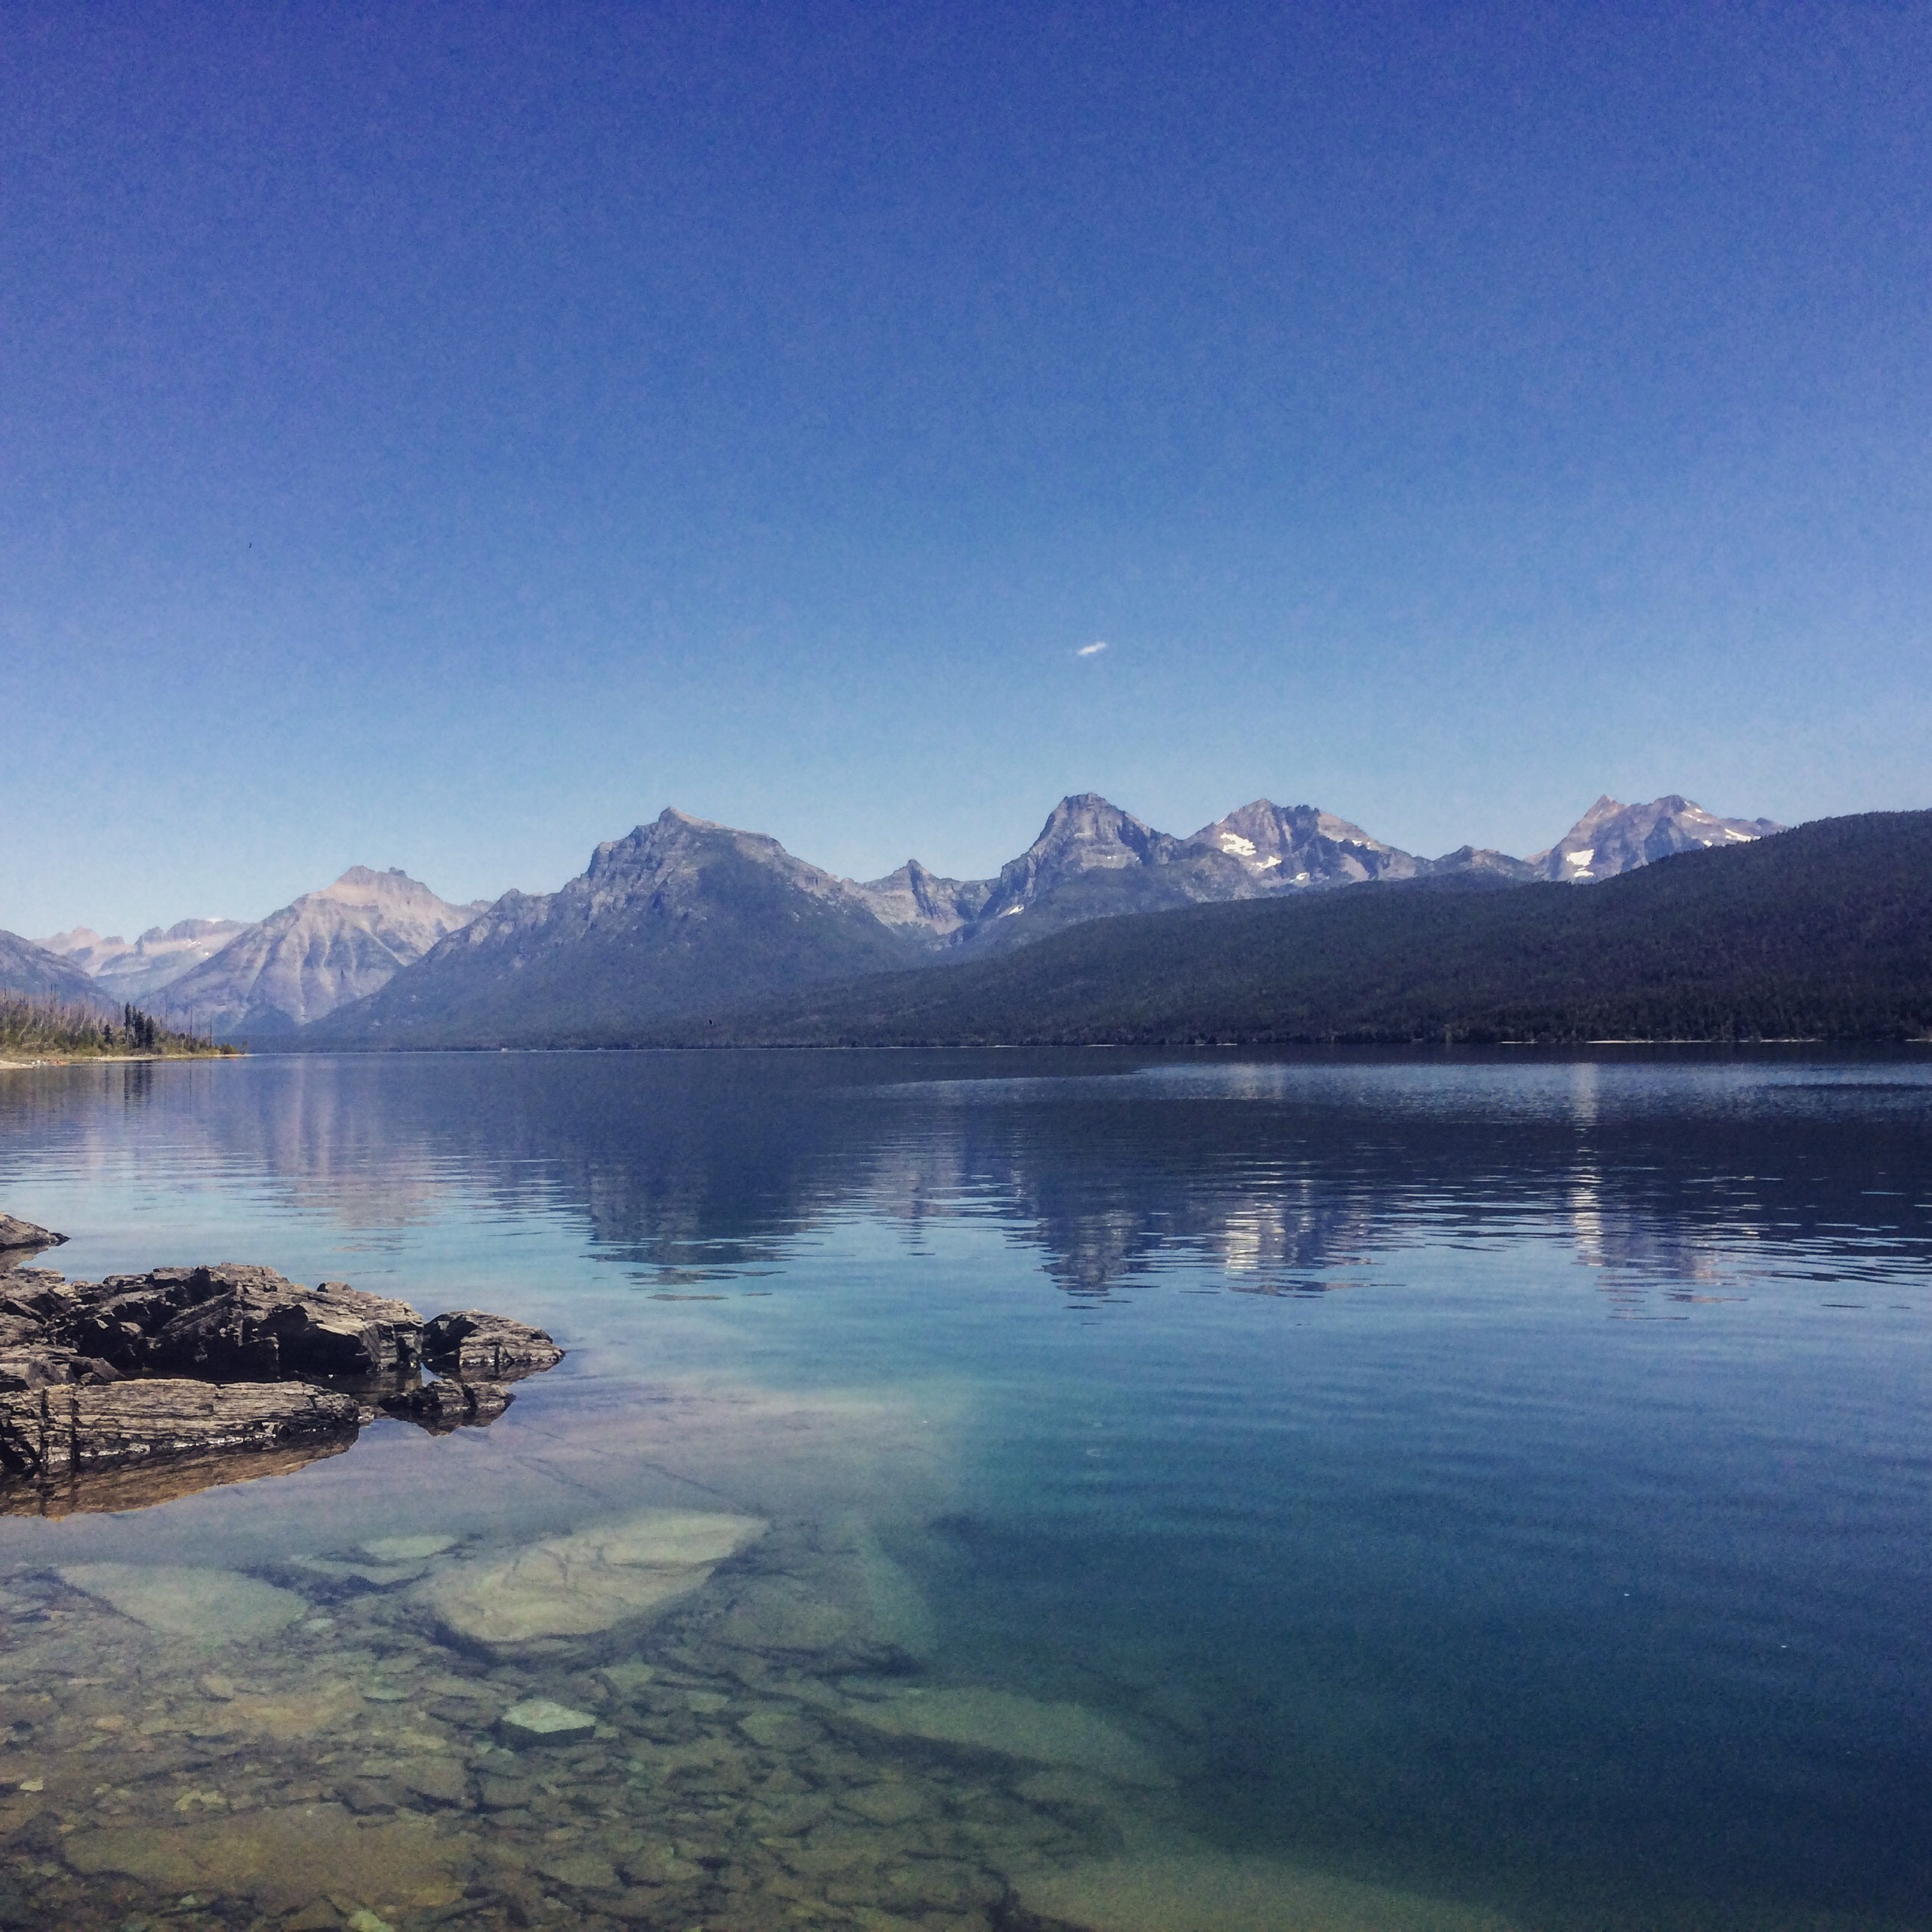 The lakes in Glacier are long, deep and cold. Carved by glaciers long since gone, they are now hotspots for recreation.